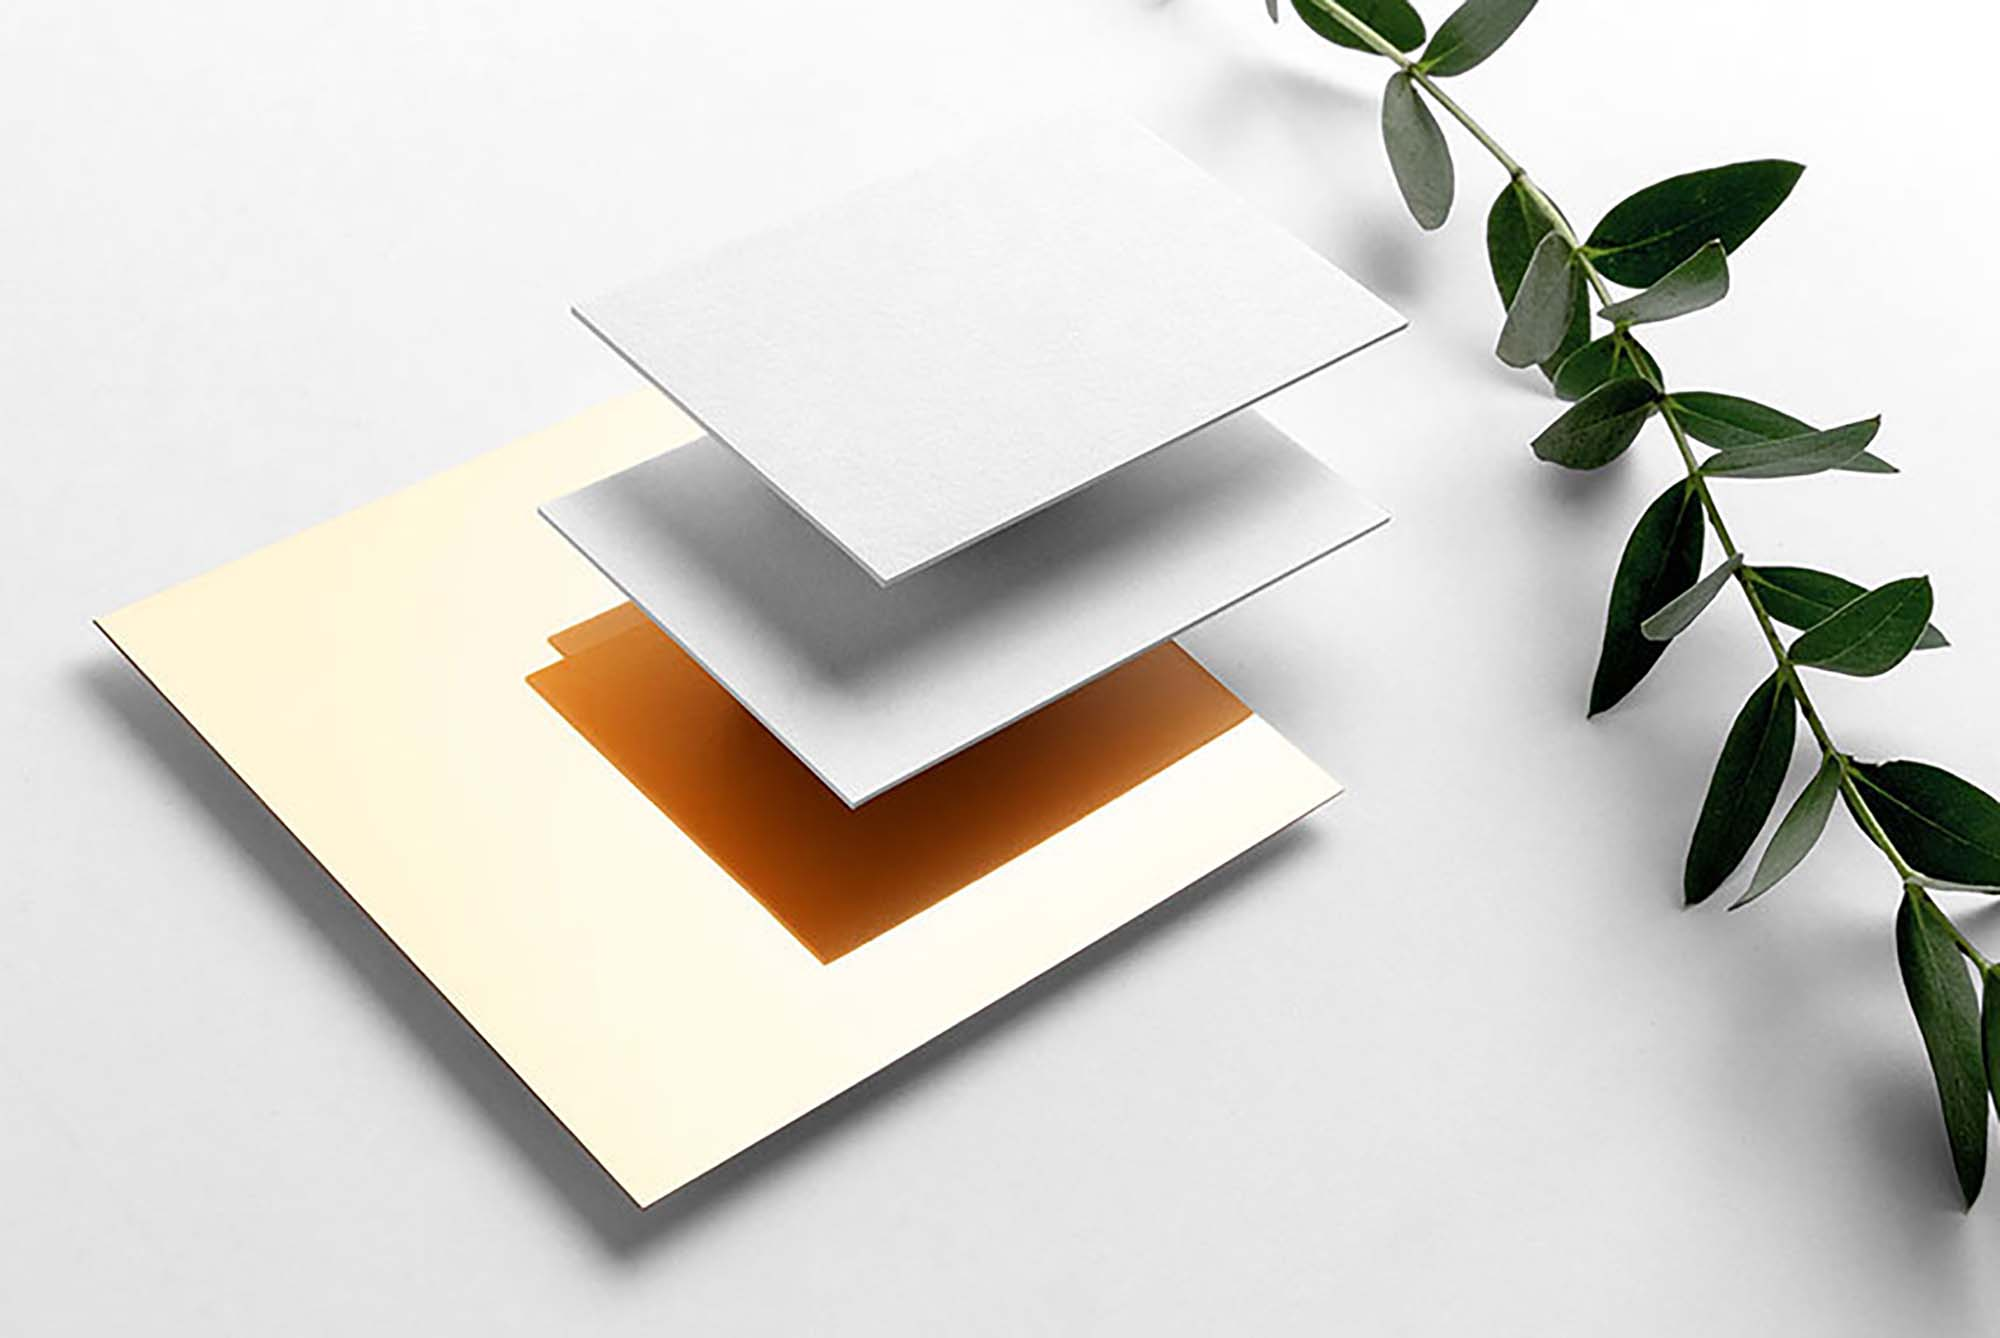 Floating Layered Business Card Mockup 2